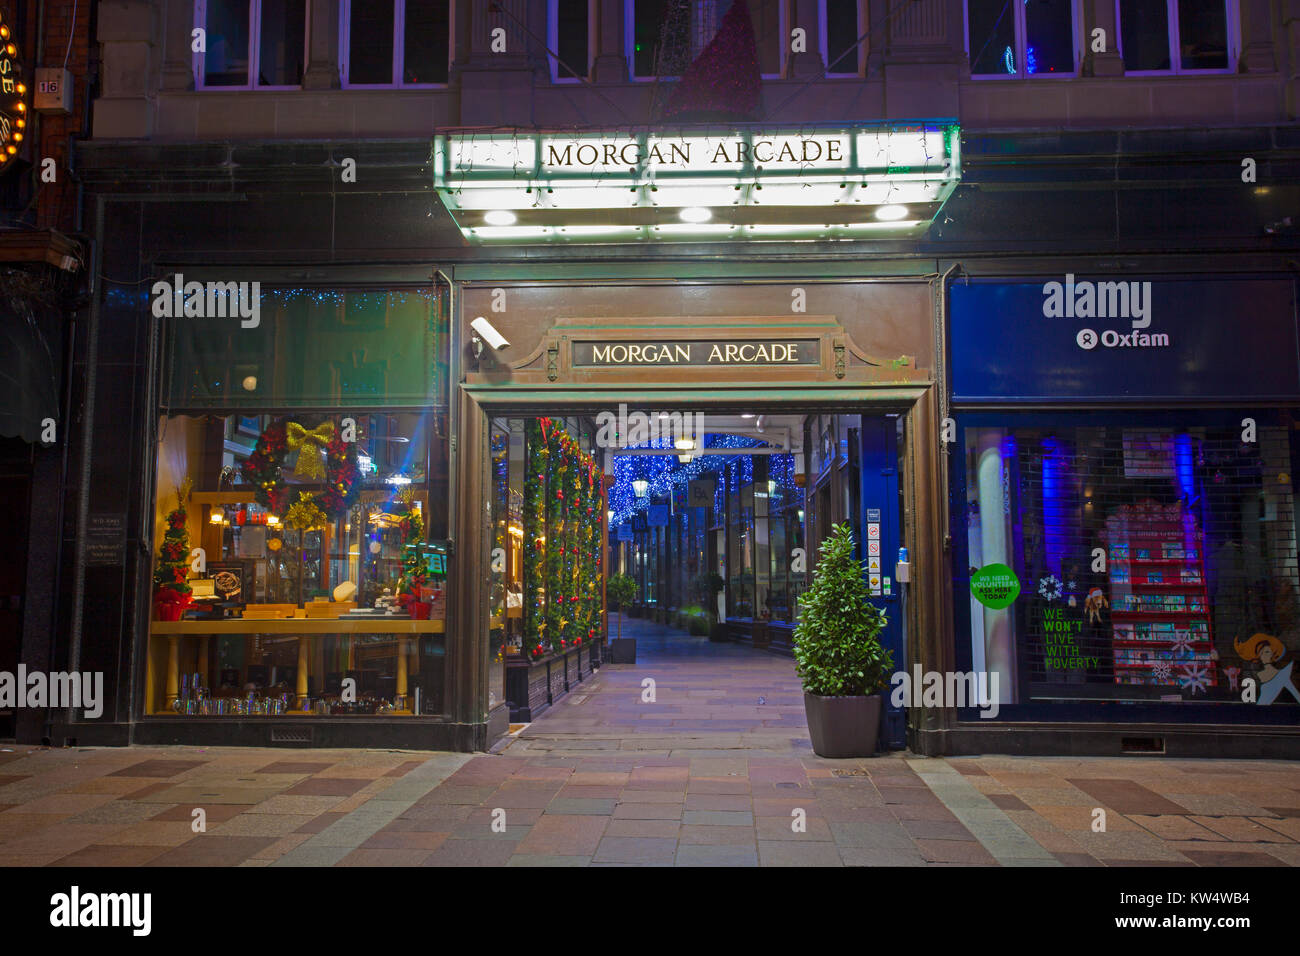 The Morgan Arcade, Cardiff, Wales, UK - Stock Image